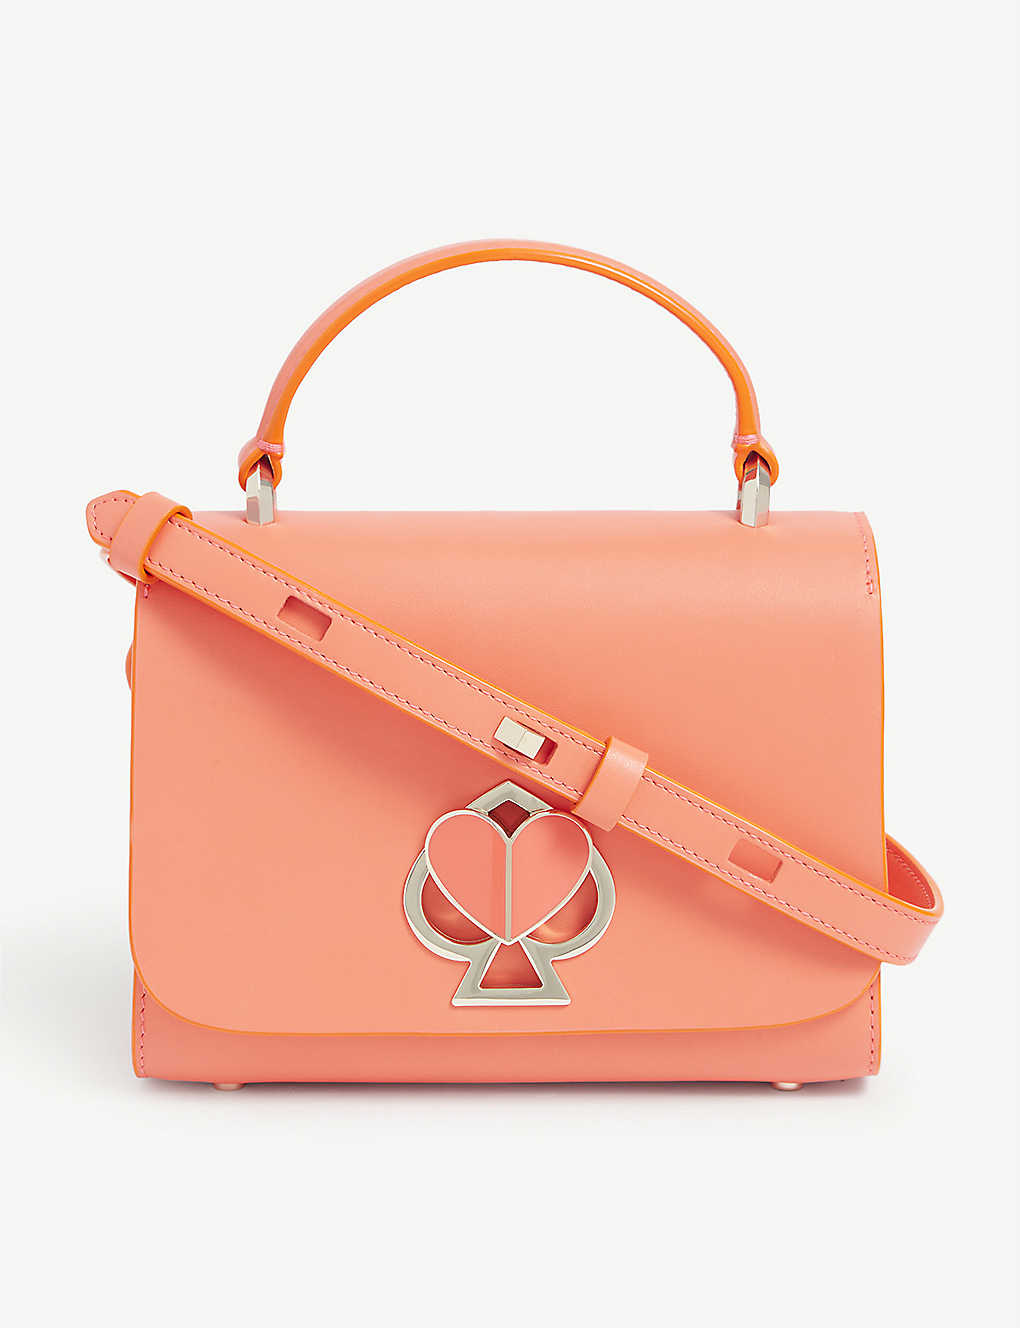 KATE SPADE NEW YORK: Heart-lock leather shoulder bag